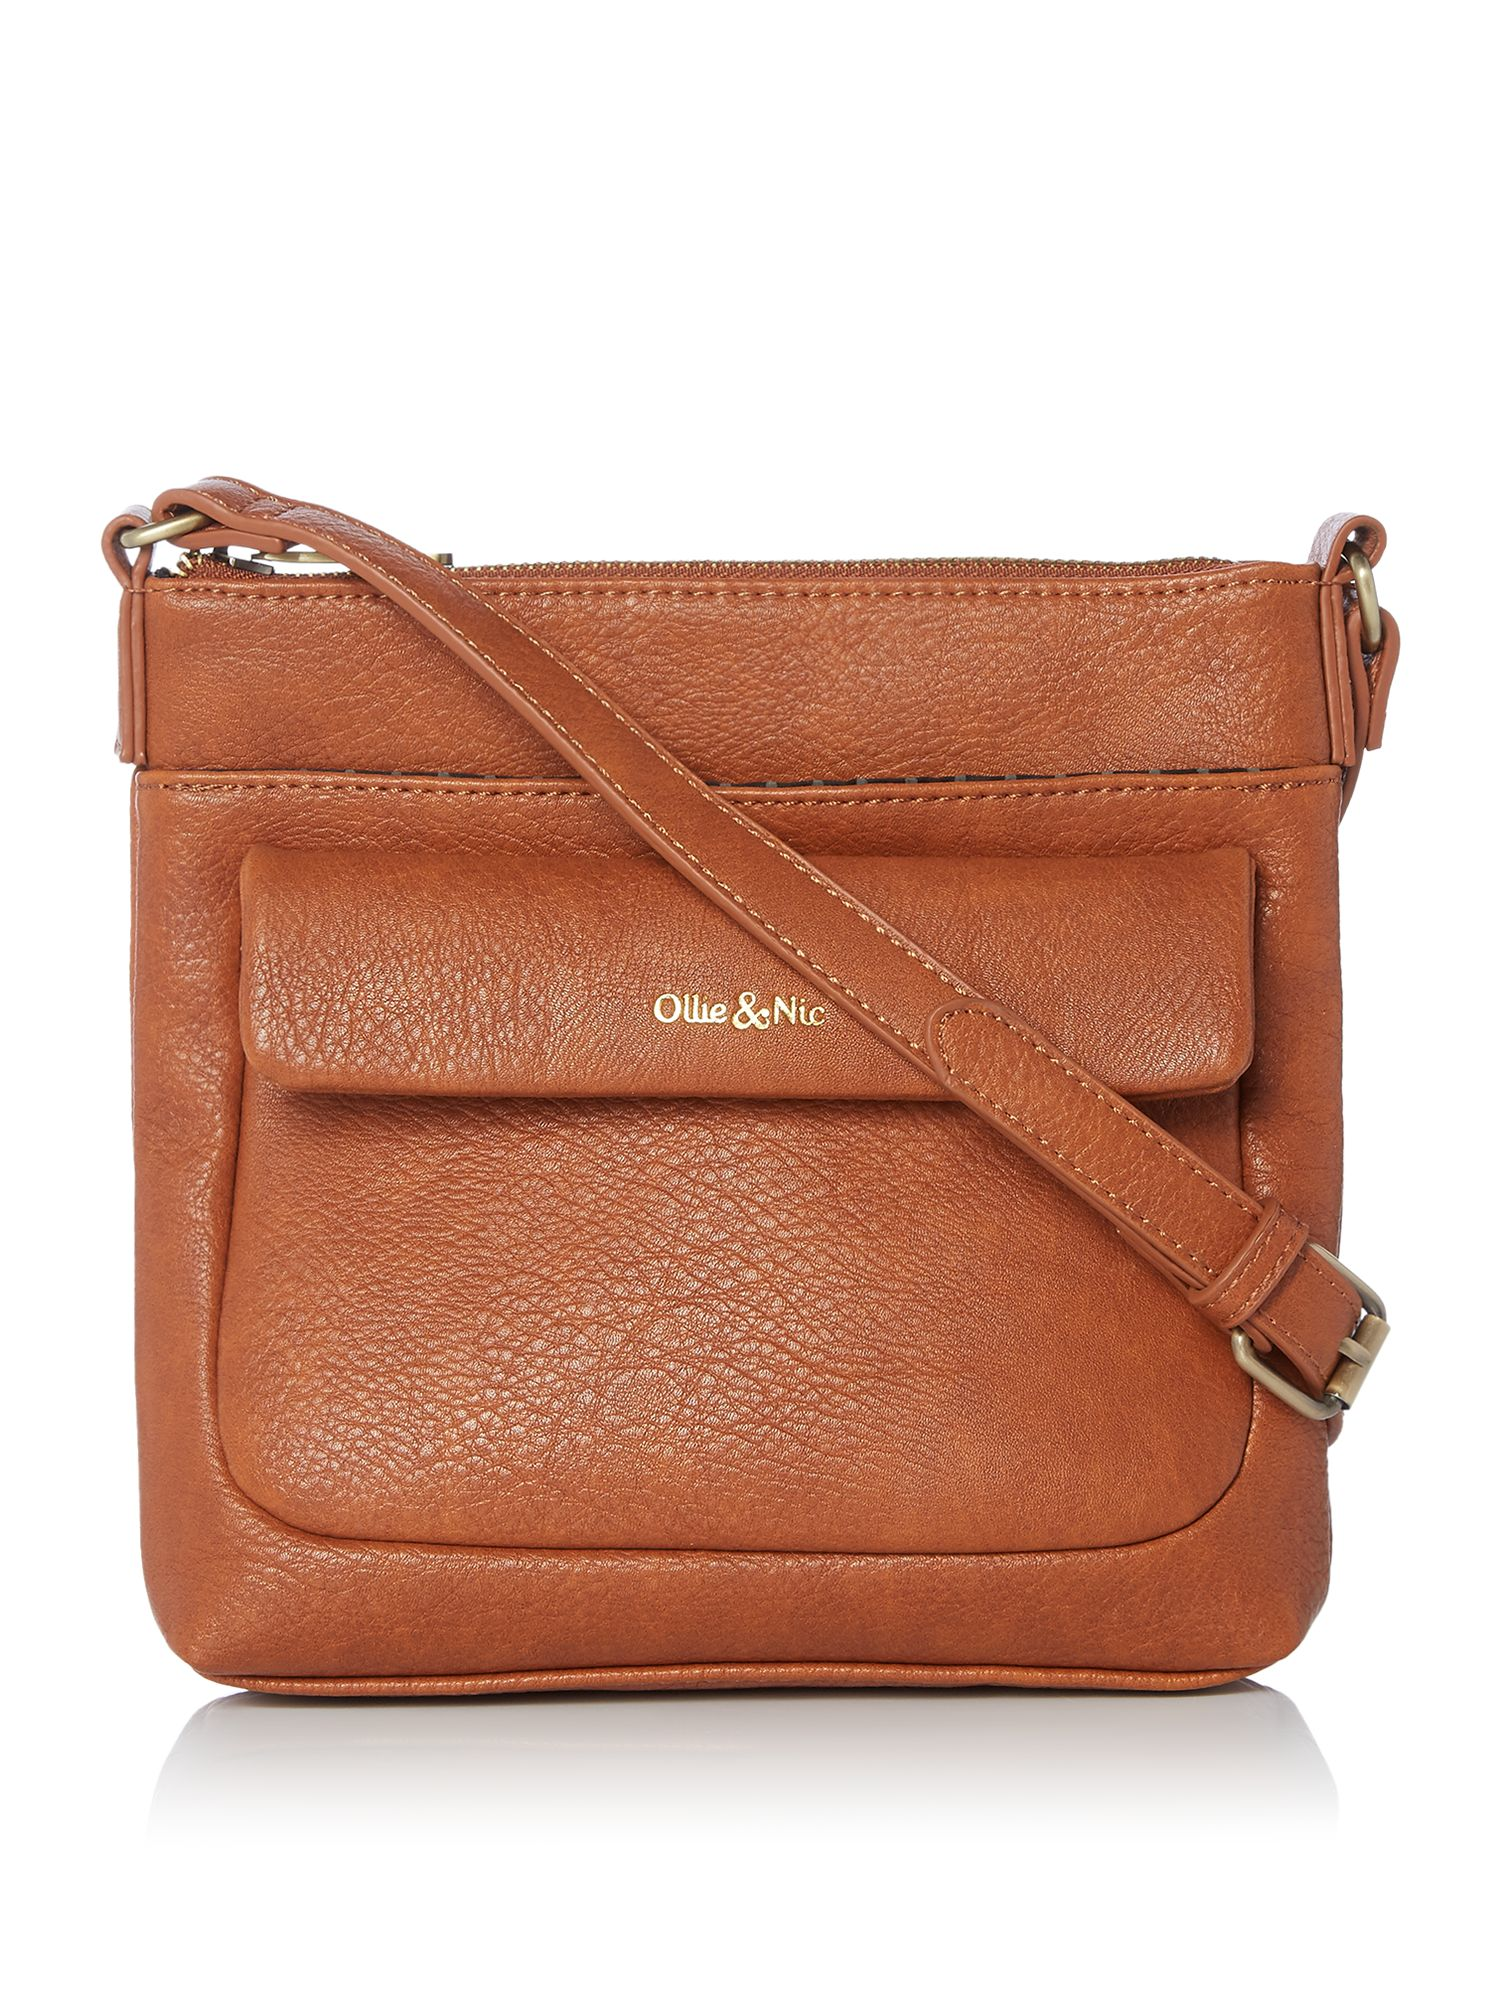 Ollie & Nic Rosa crossbody, Tan